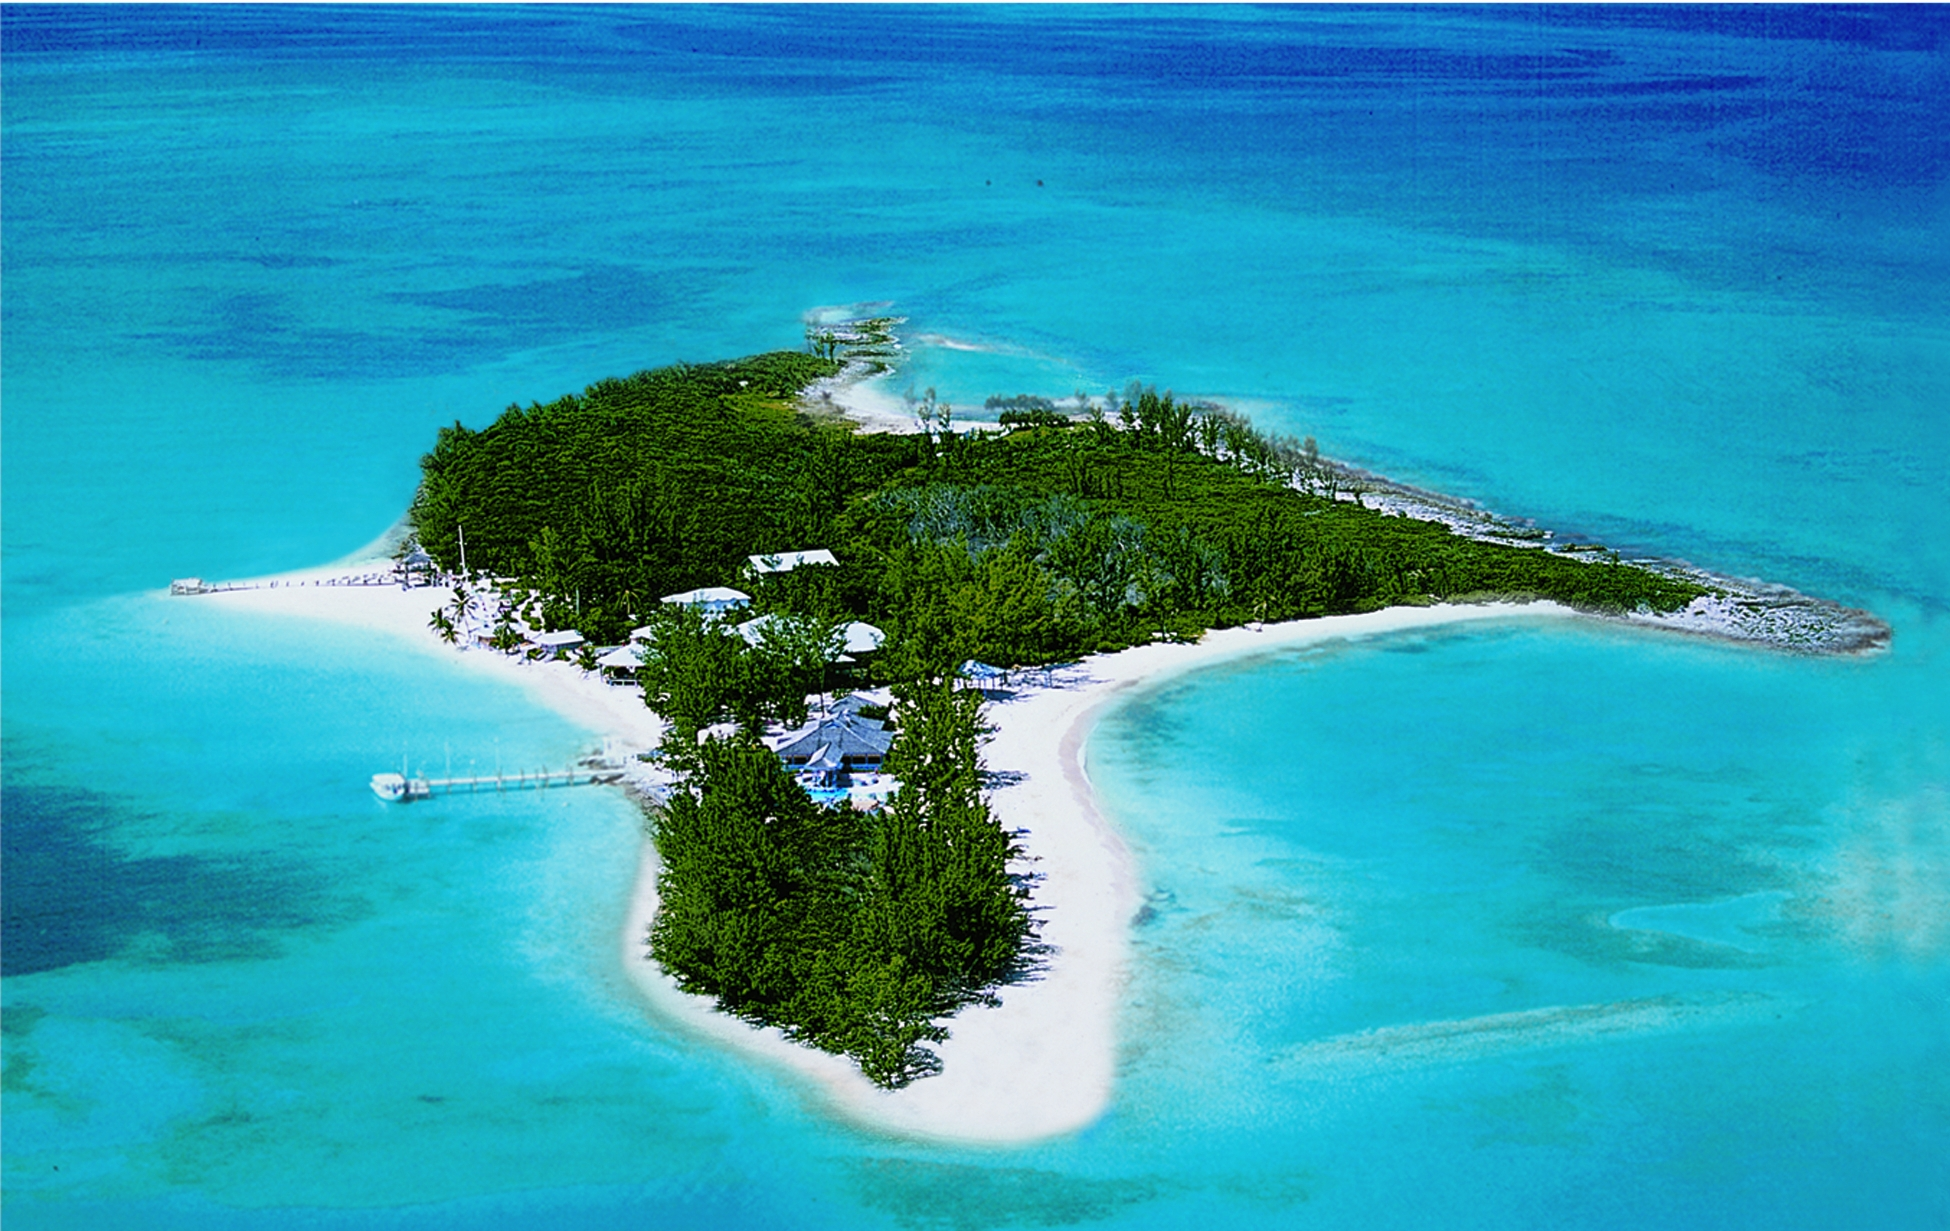 small island areal view